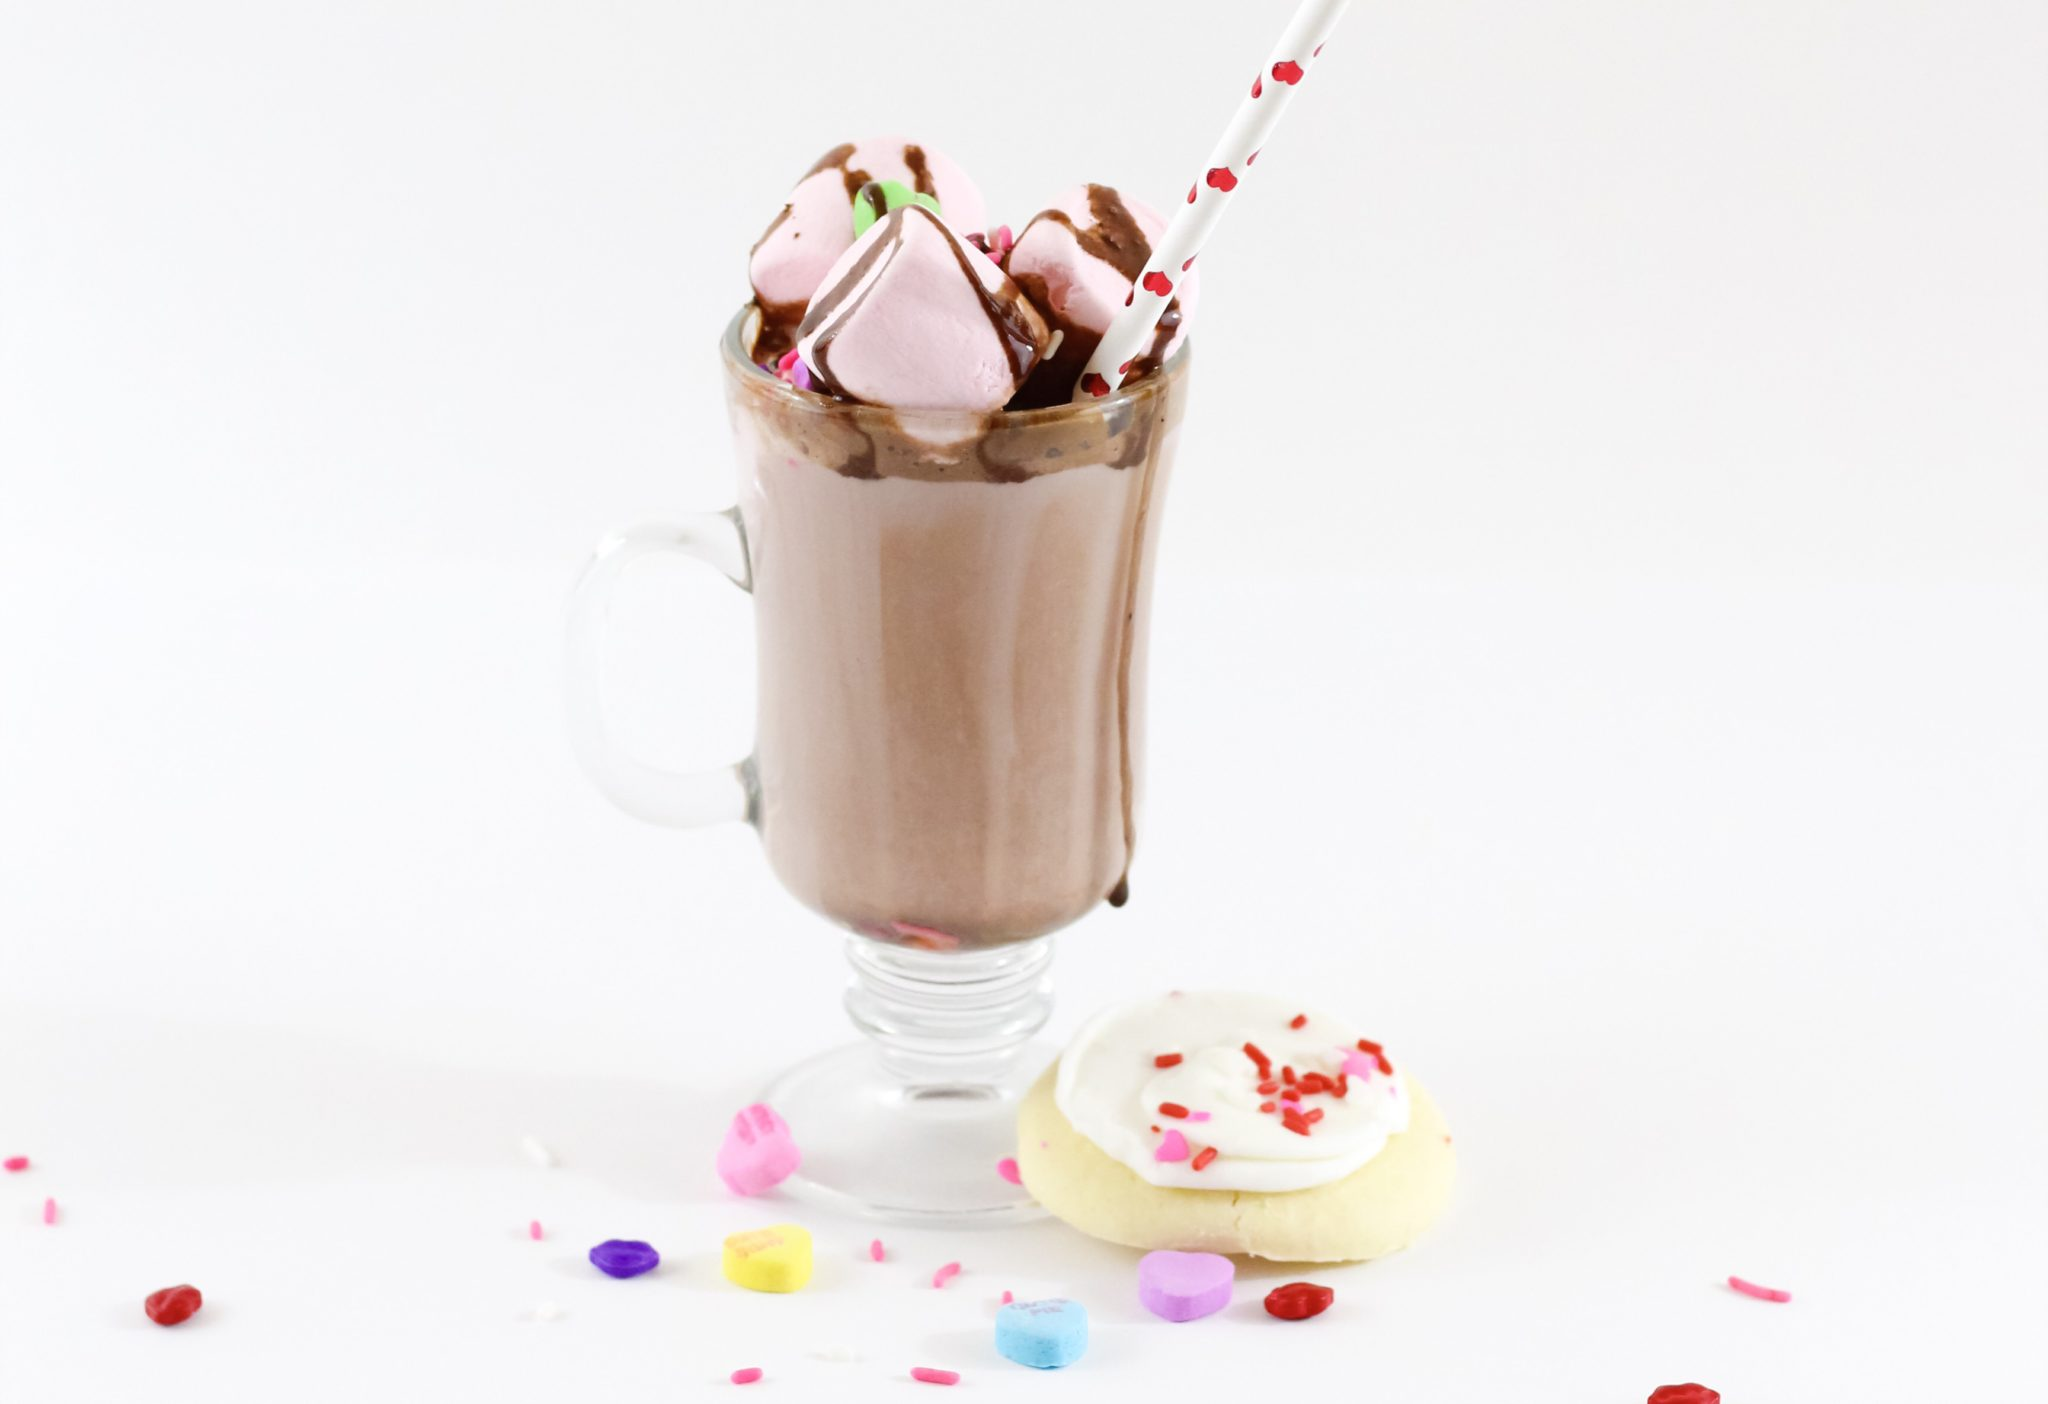 Homemade Hot Chocolate Date